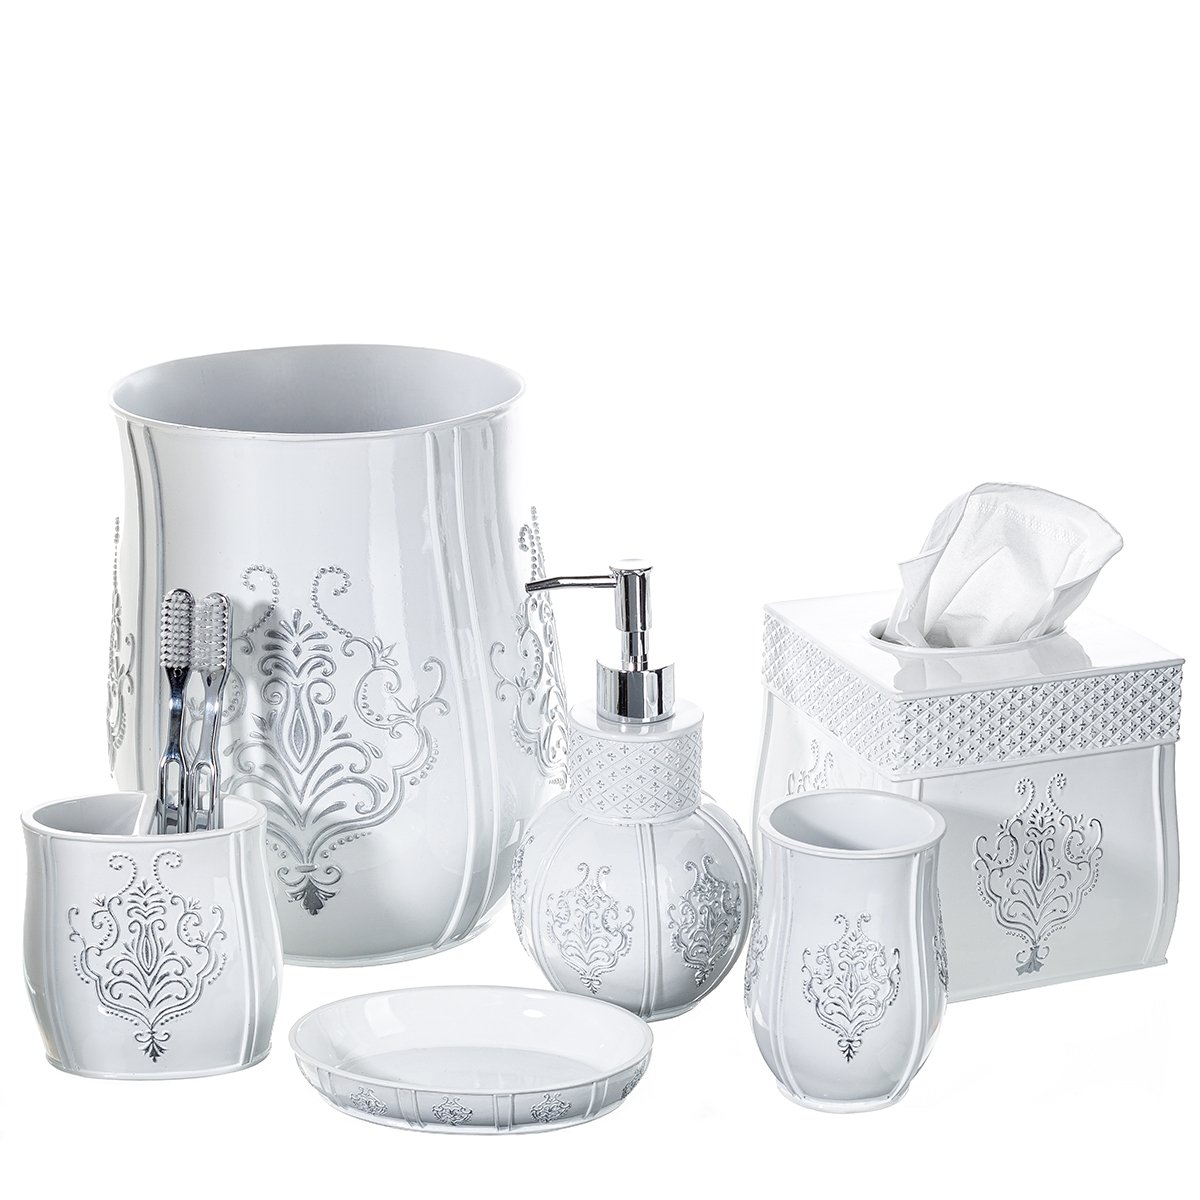 Amazon Com Vintage White Bathroom Accessories 4 Piece Bathroom Accessories Set Bathroom Set Features French Fleur De Lis Motifs Soap Dispenser